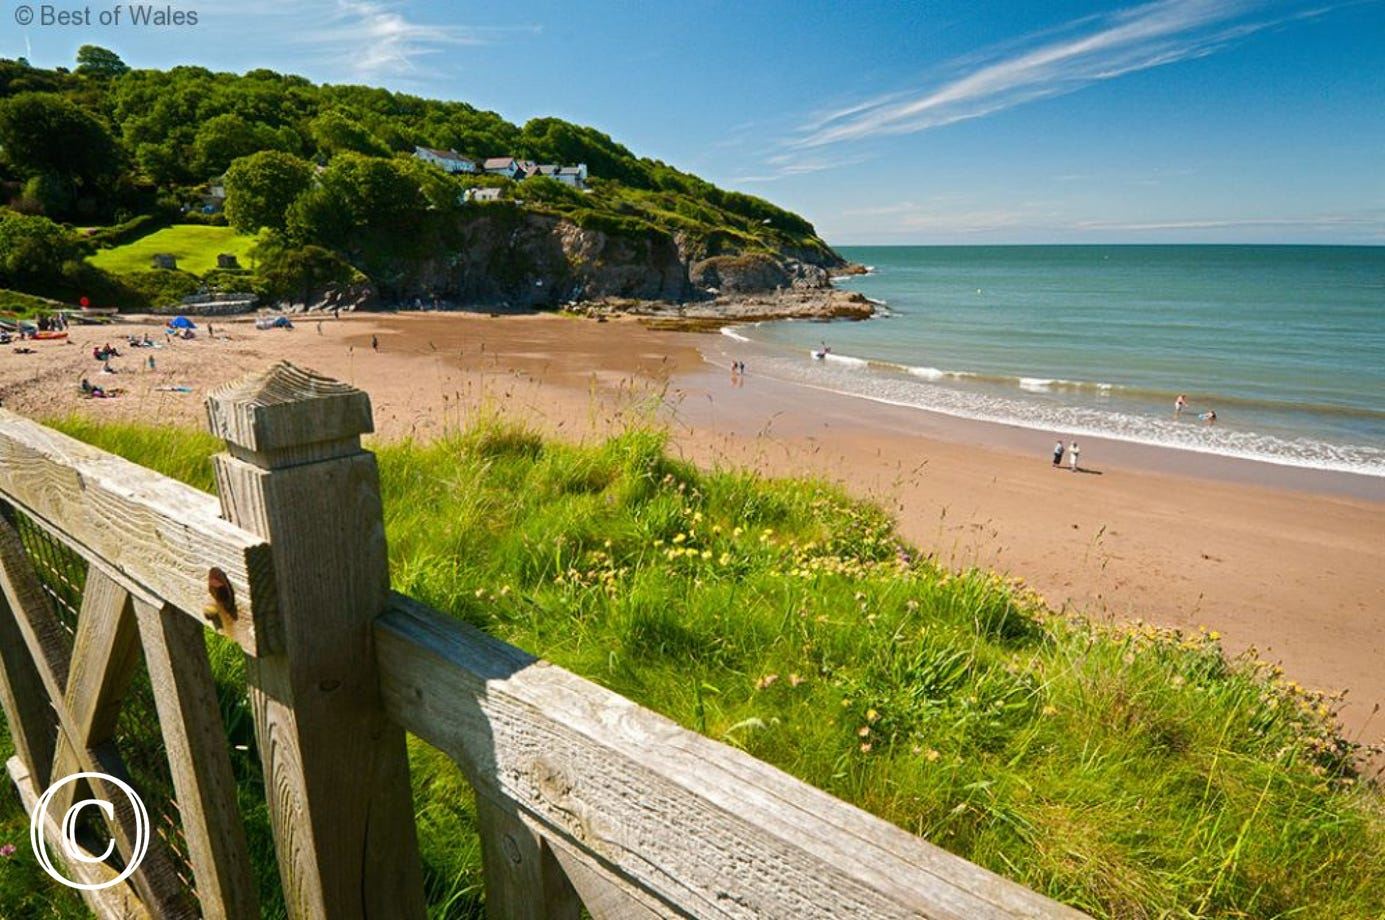 Aberporth beach nearby